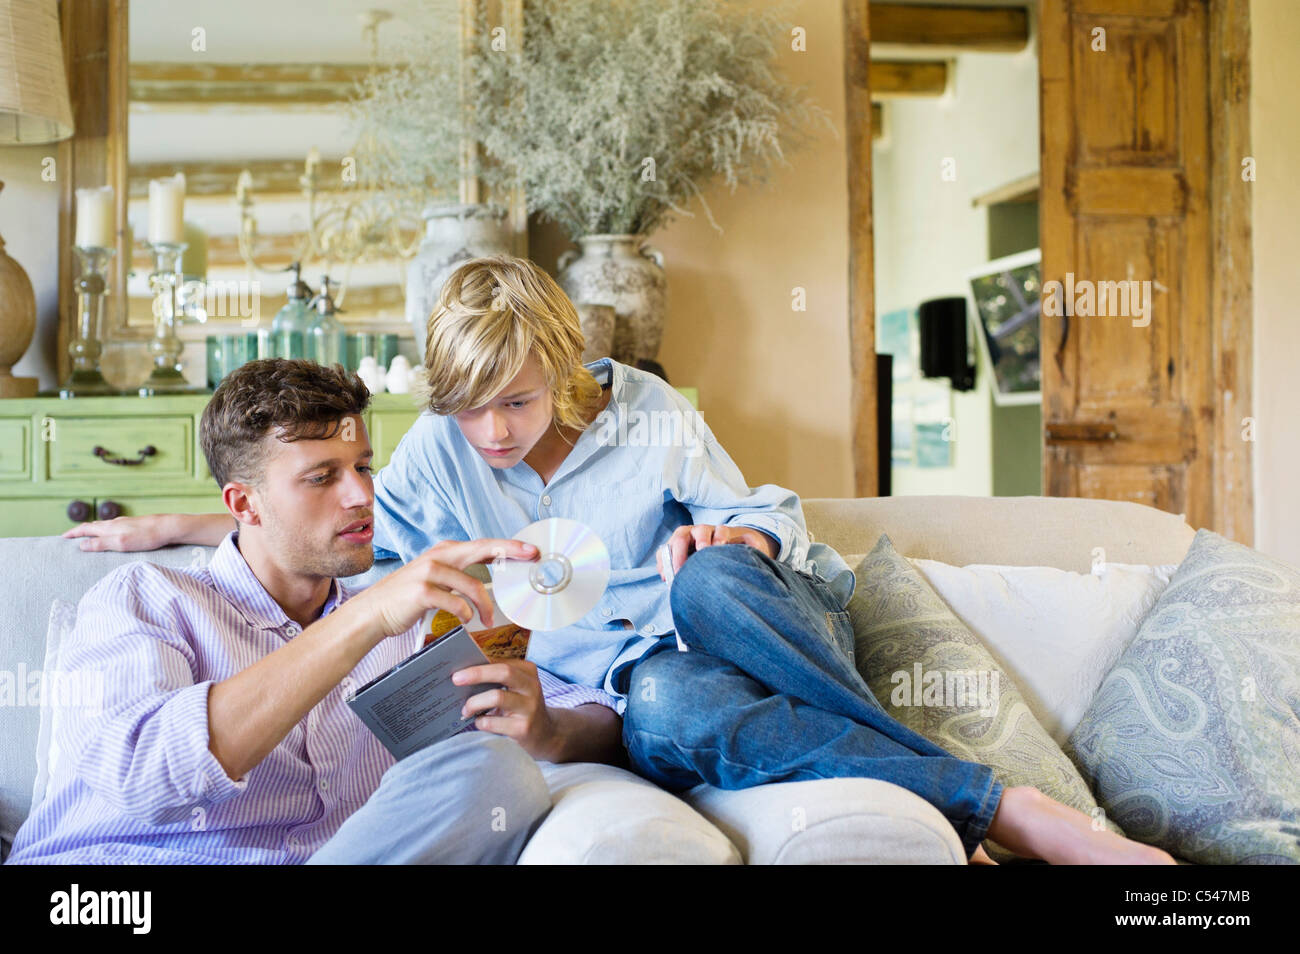 Man and a little boy looking at compact discs - Stock Image